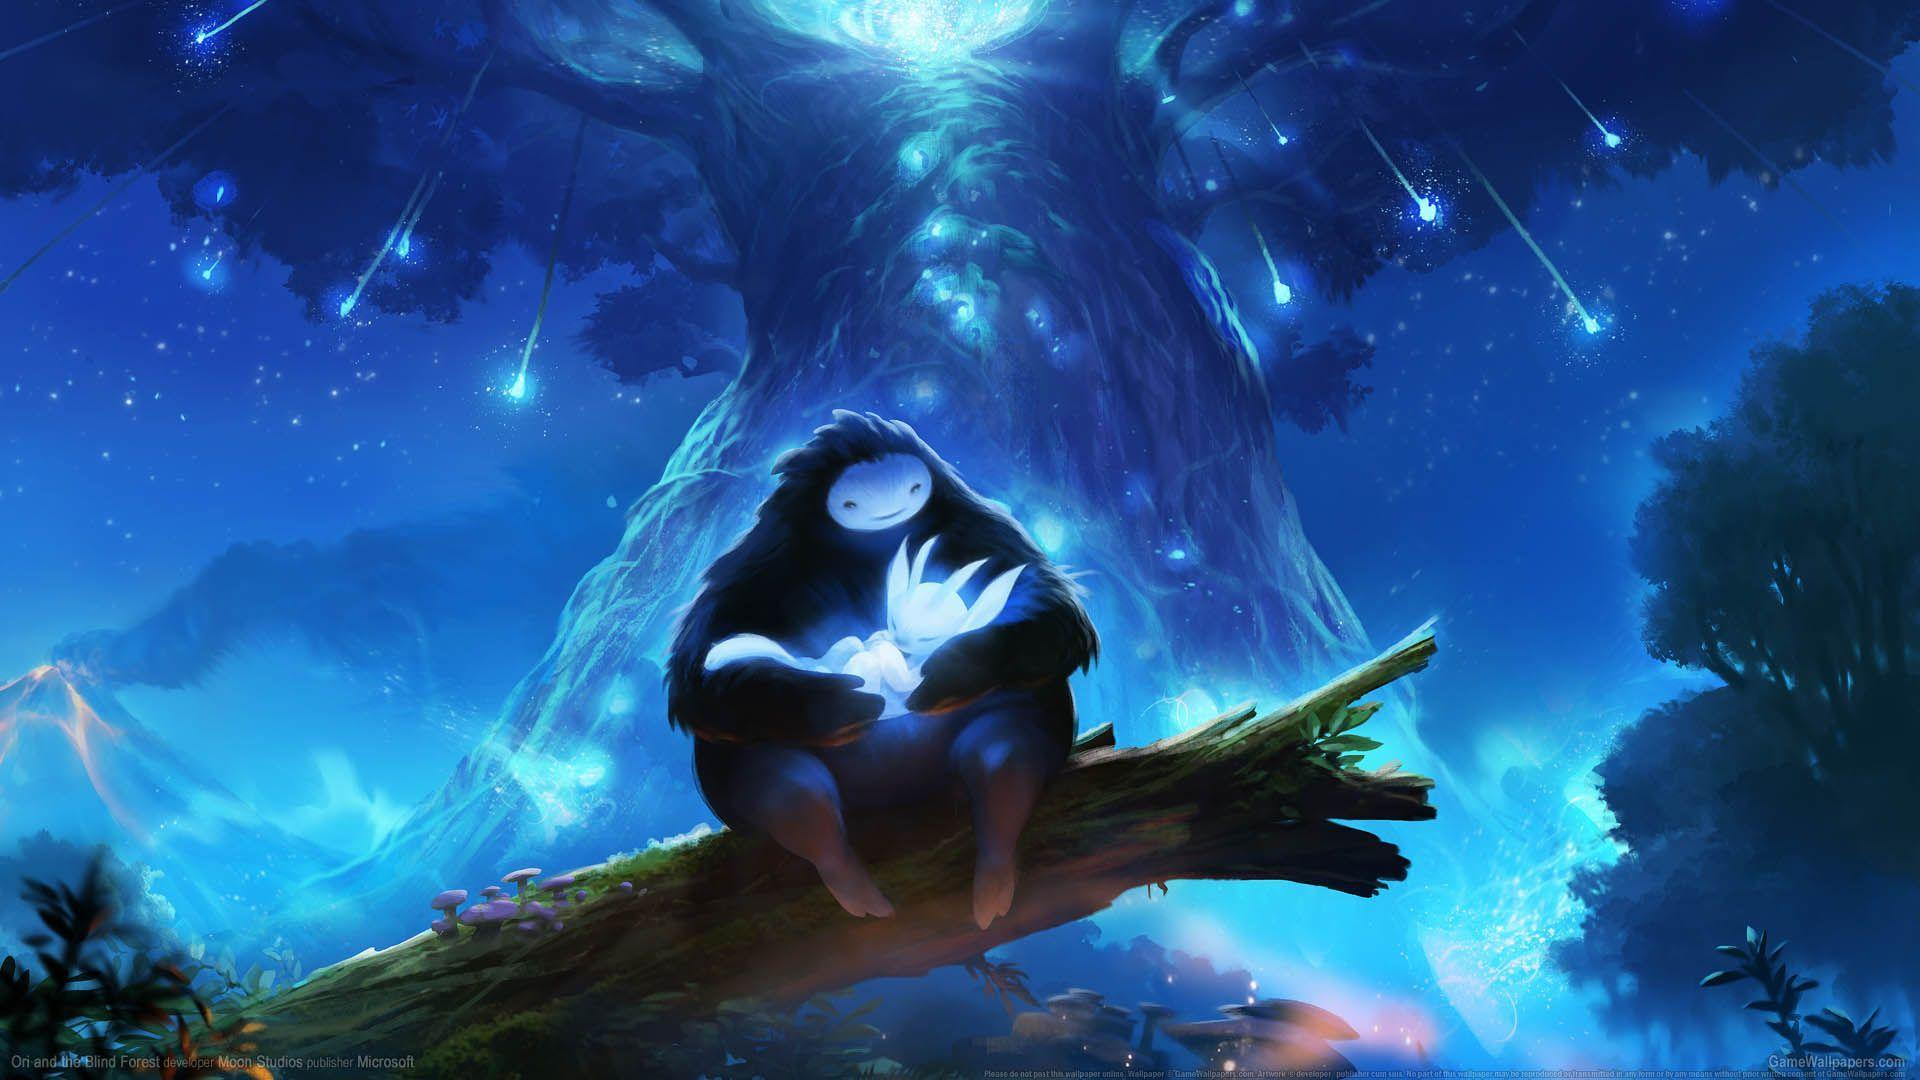 Ori and the Blind Forest: video game difficulty stress not one only way to play, gamer's block